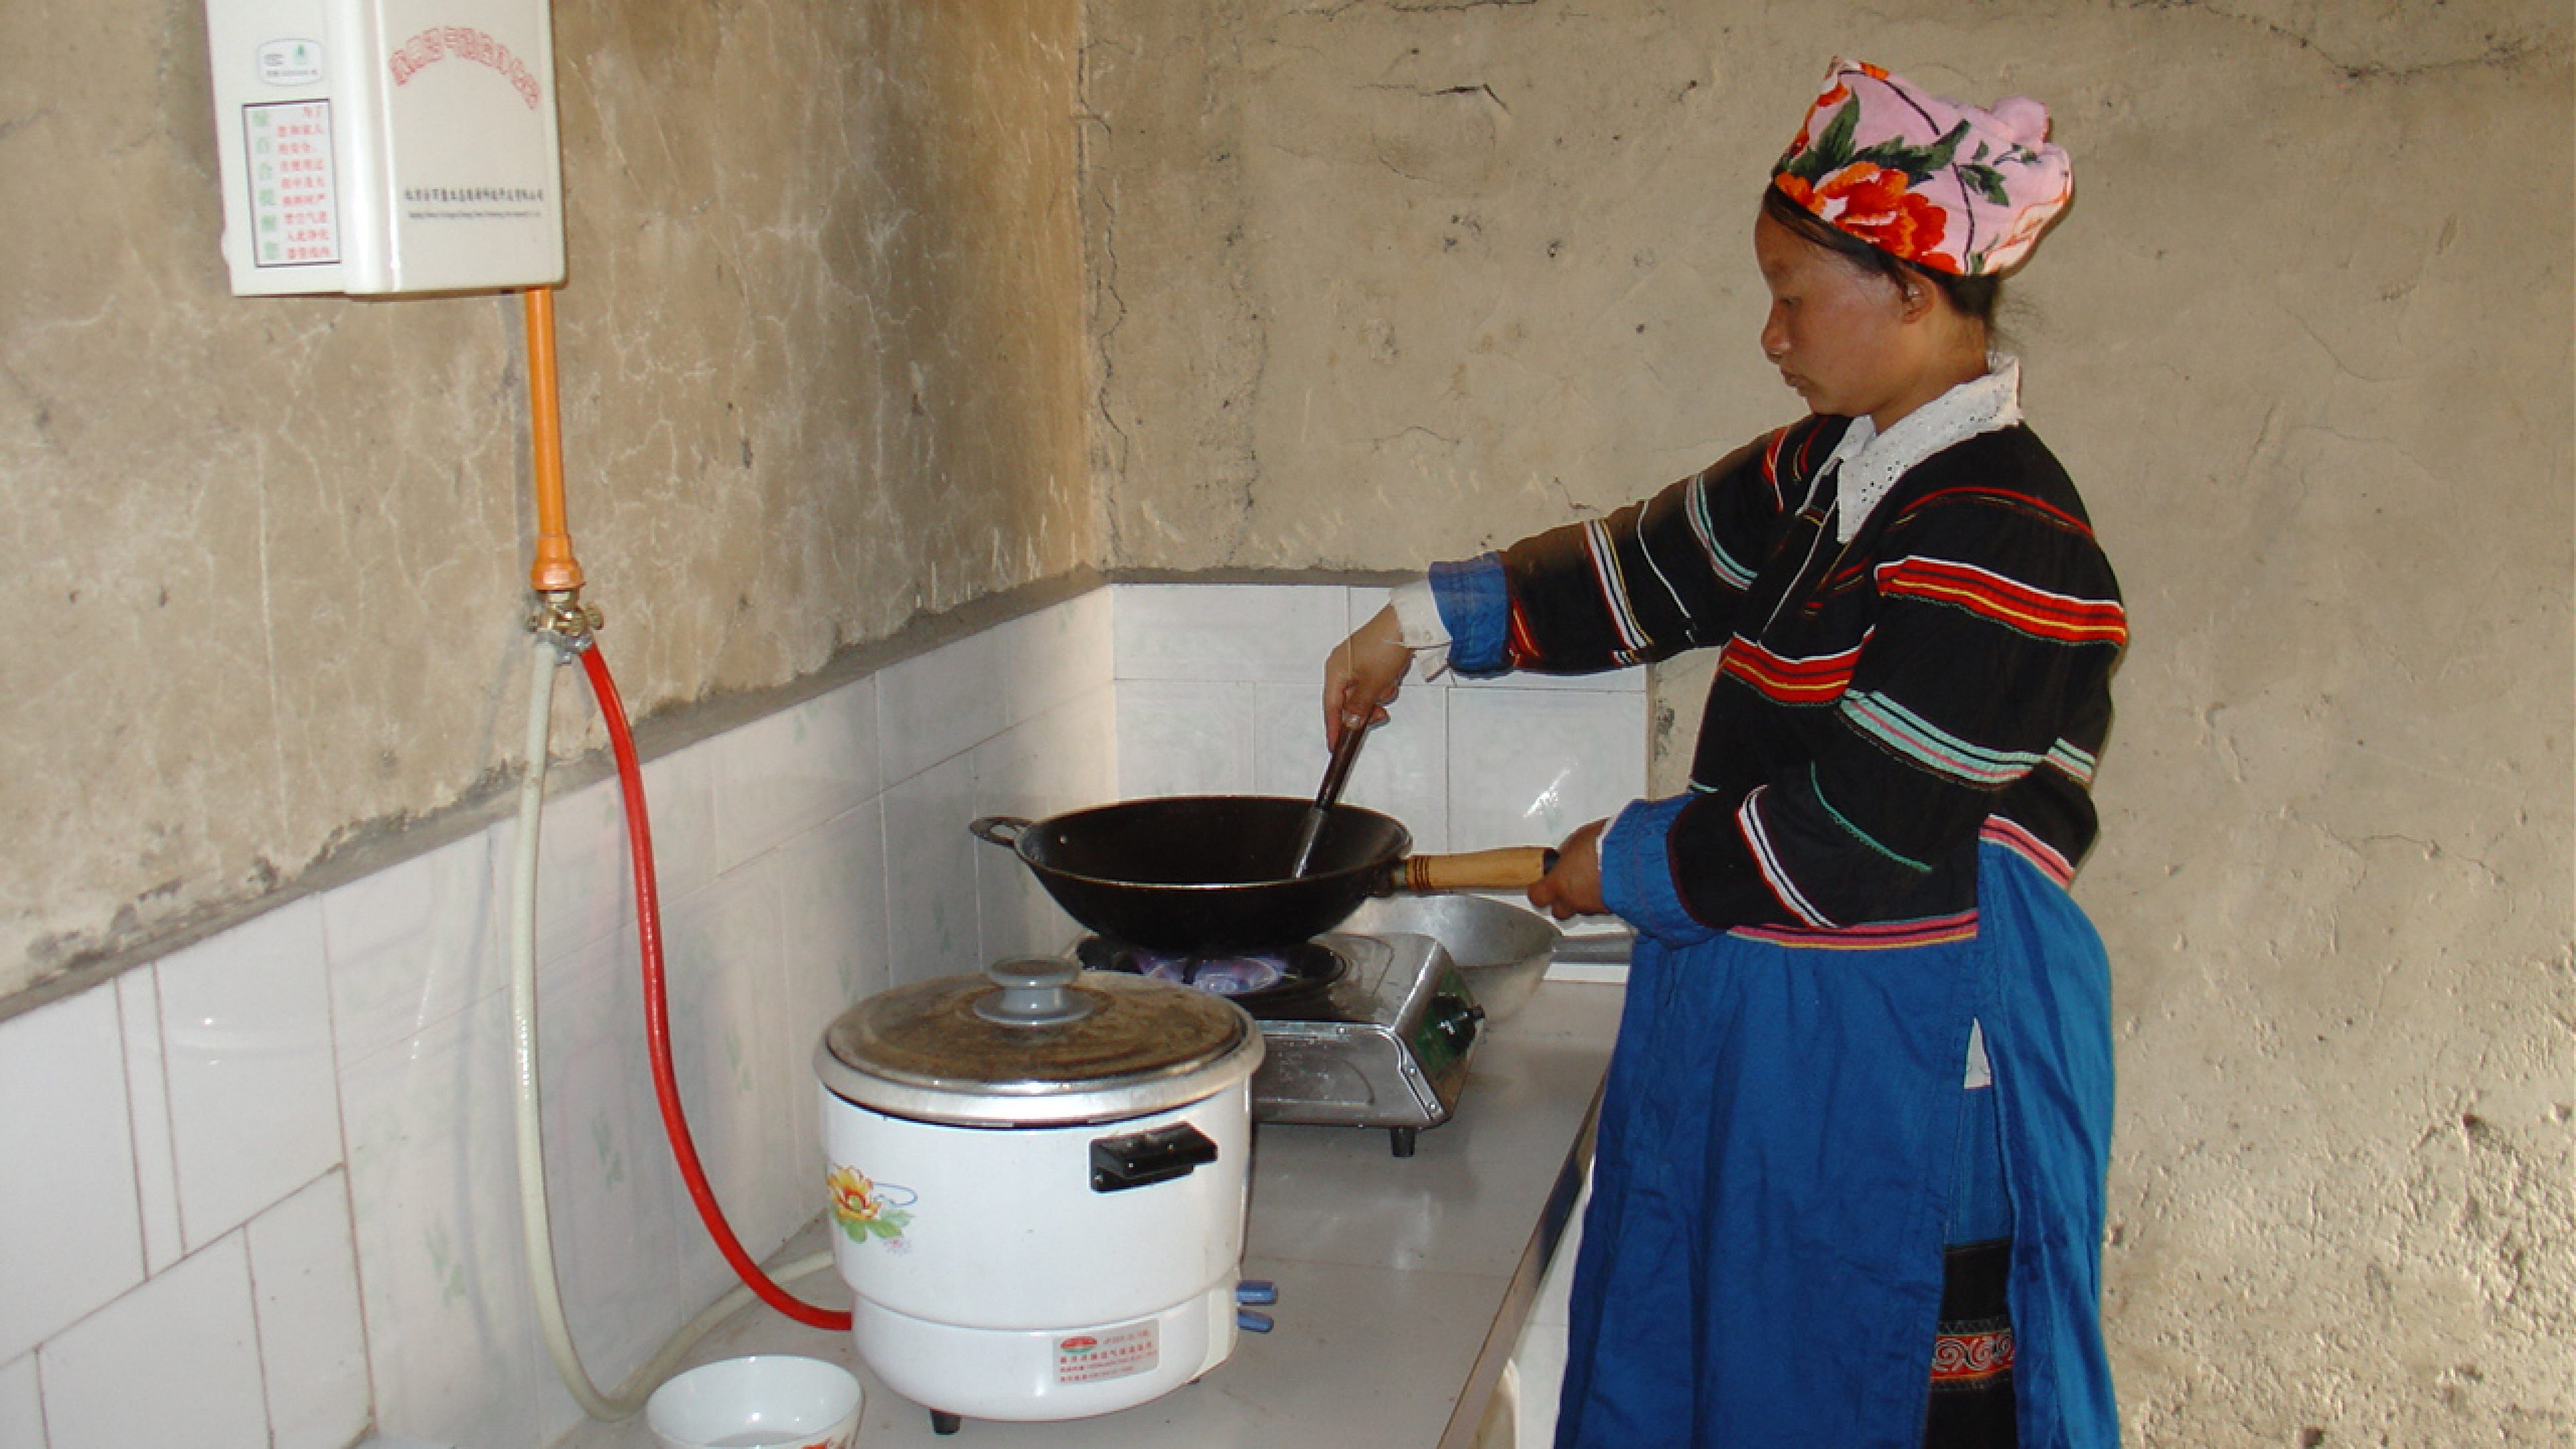 Reducing carbon, tackling poverty – biogas, China  – woman slow cooking and fried cooking using renewable biogas